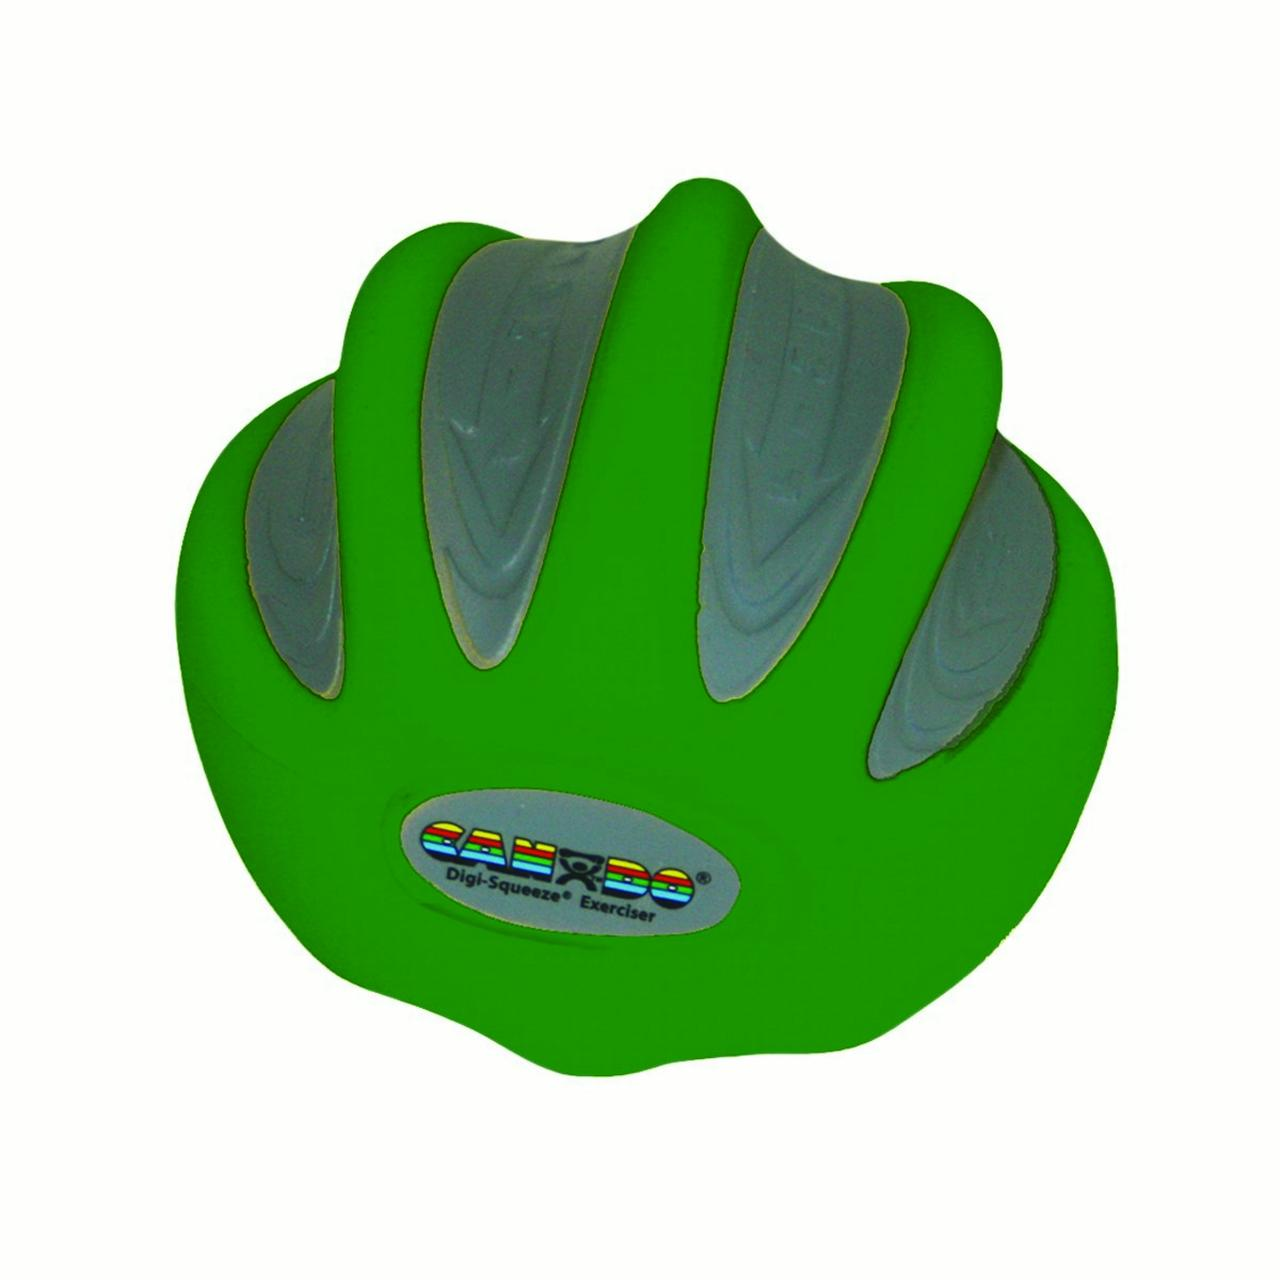 CanDo Digi-Squeeze Hand Exerciser, Medium, Green, Moderate